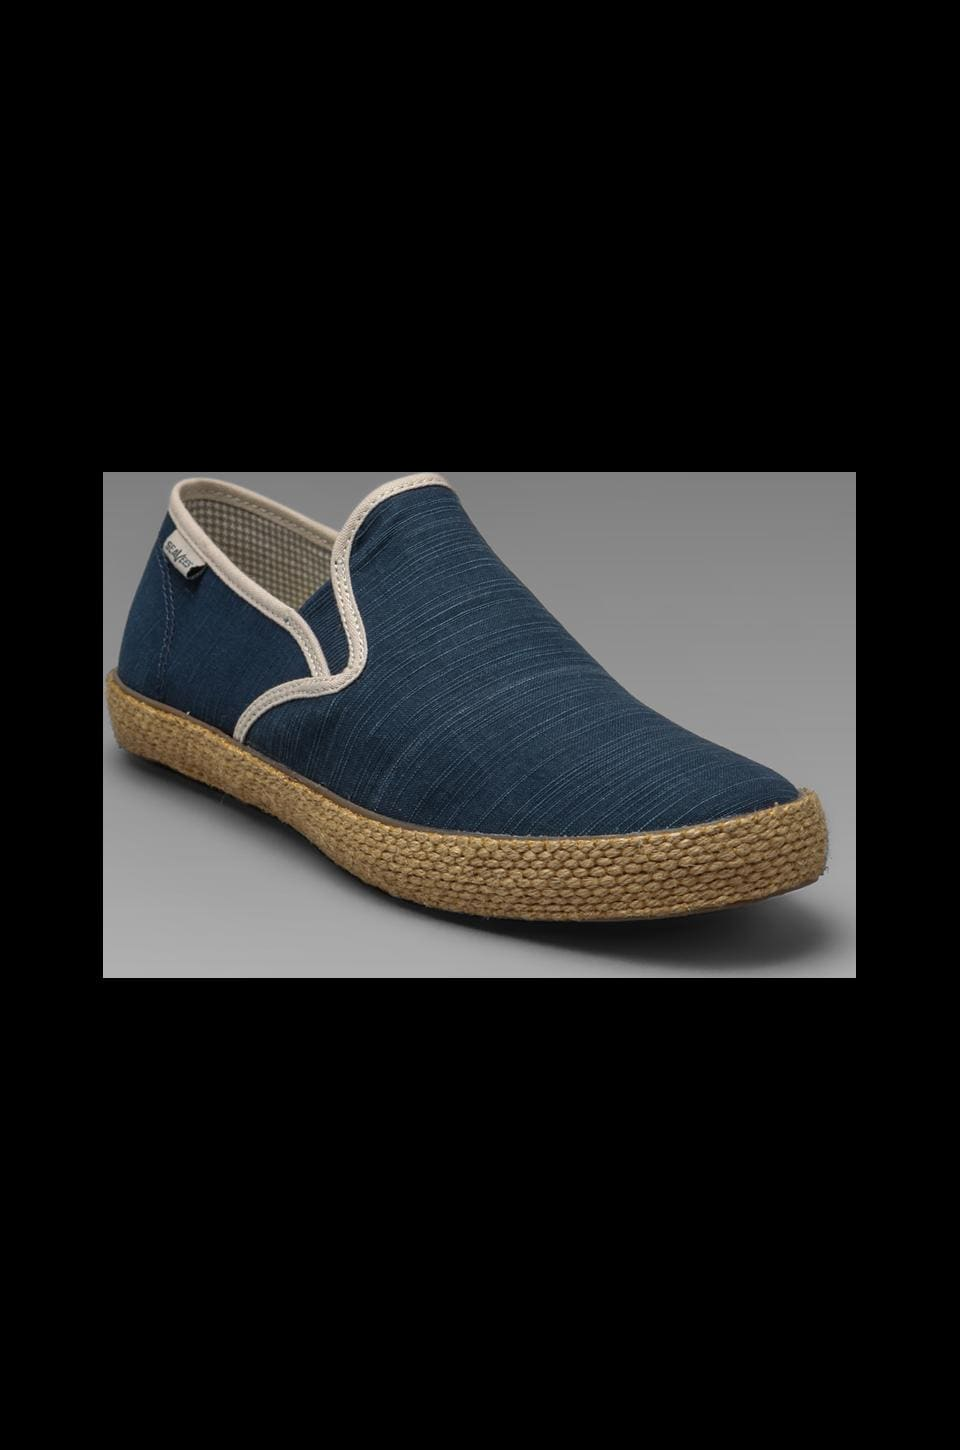 SeaVees Baja Slip-on Espadrille Meet the Beetles